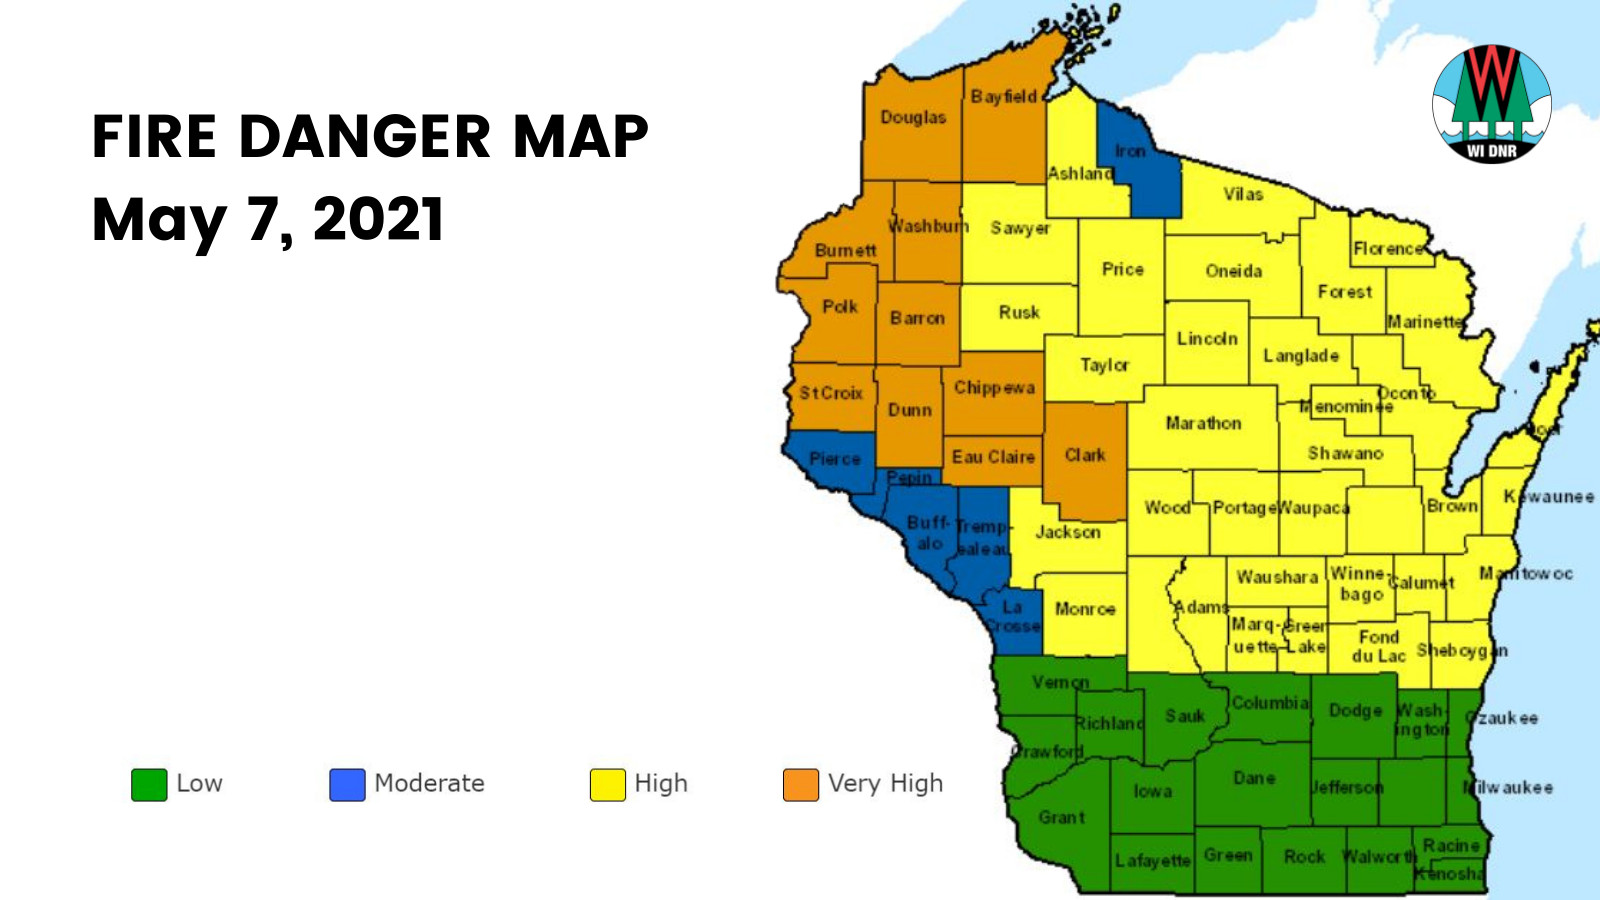 map of fire danger in Wisconsin for May 7